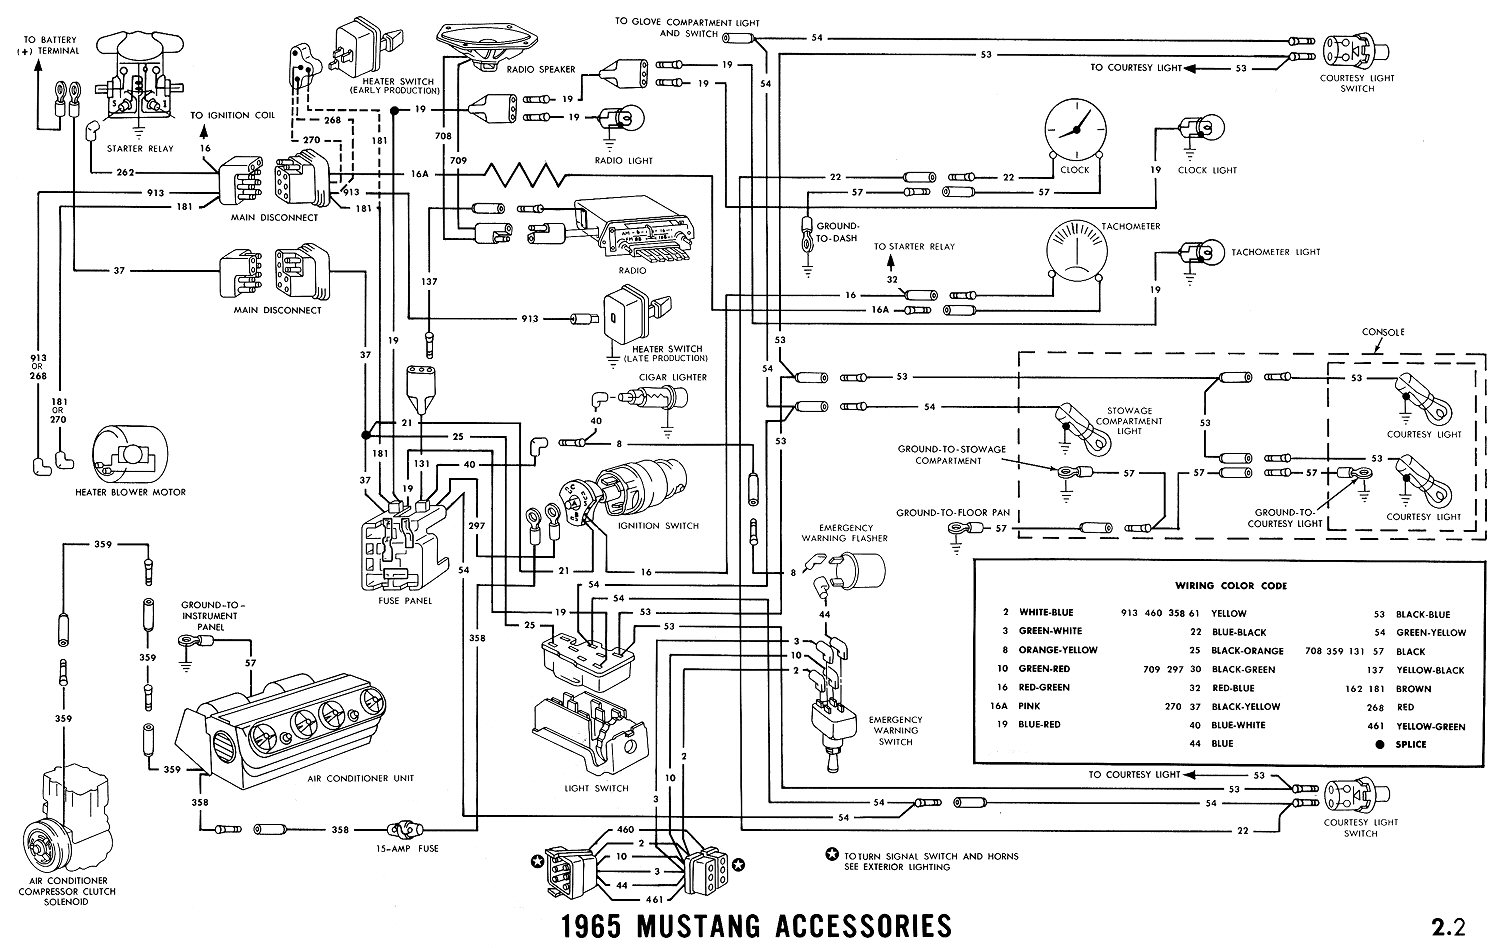 1965 Mustang Wiring Diagram Free Download, 1965, Get Free